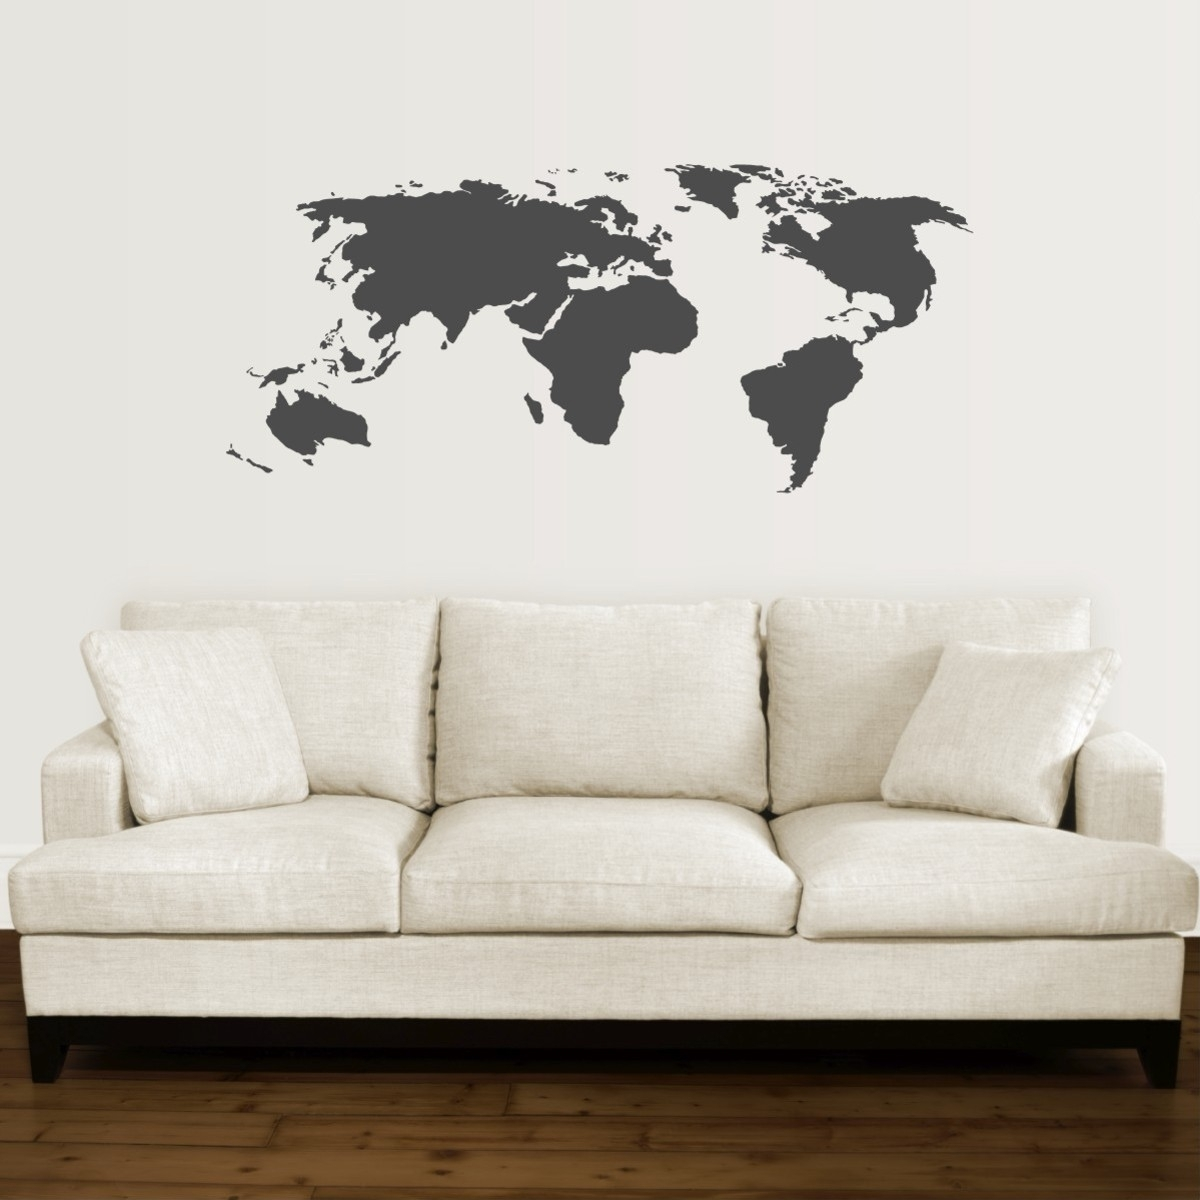 Newest 17 Cool Ideas For World Map Wall Art – Live Diy Ideas In Wall Art Map Of World (View 11 of 20)